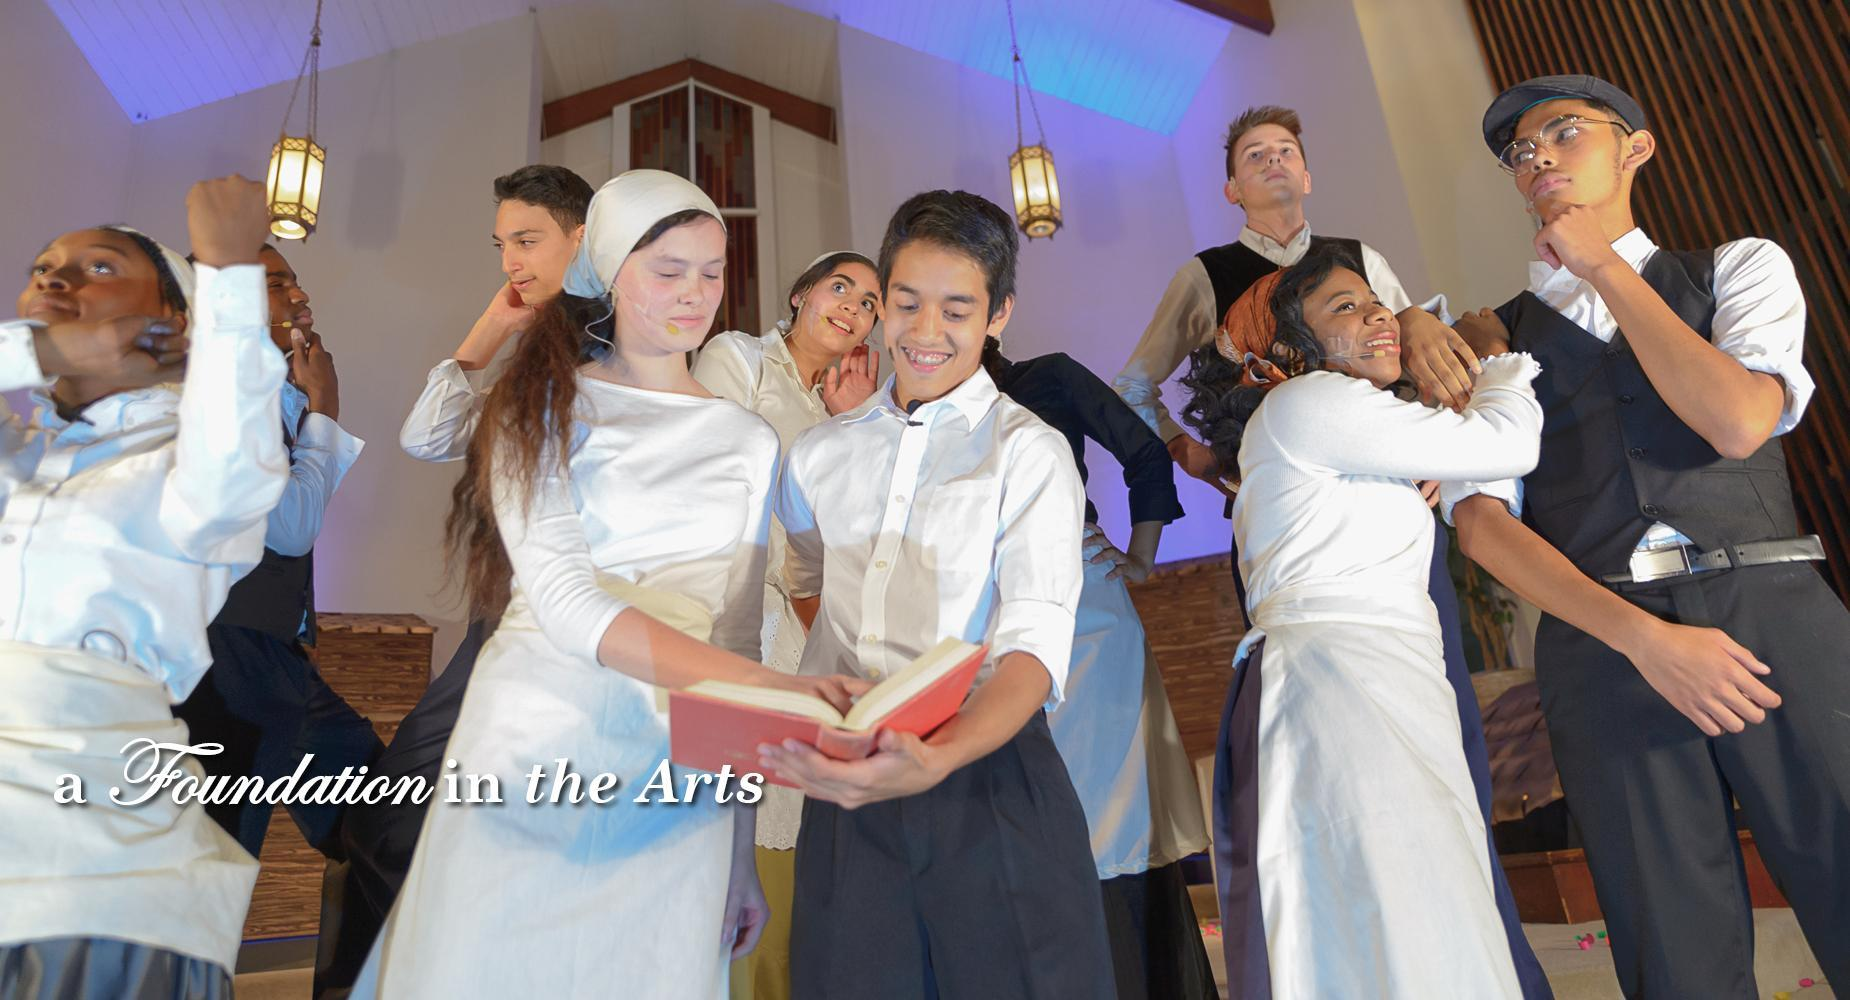 a foundation in the arts with students acting in the Fiddler on the Roof play